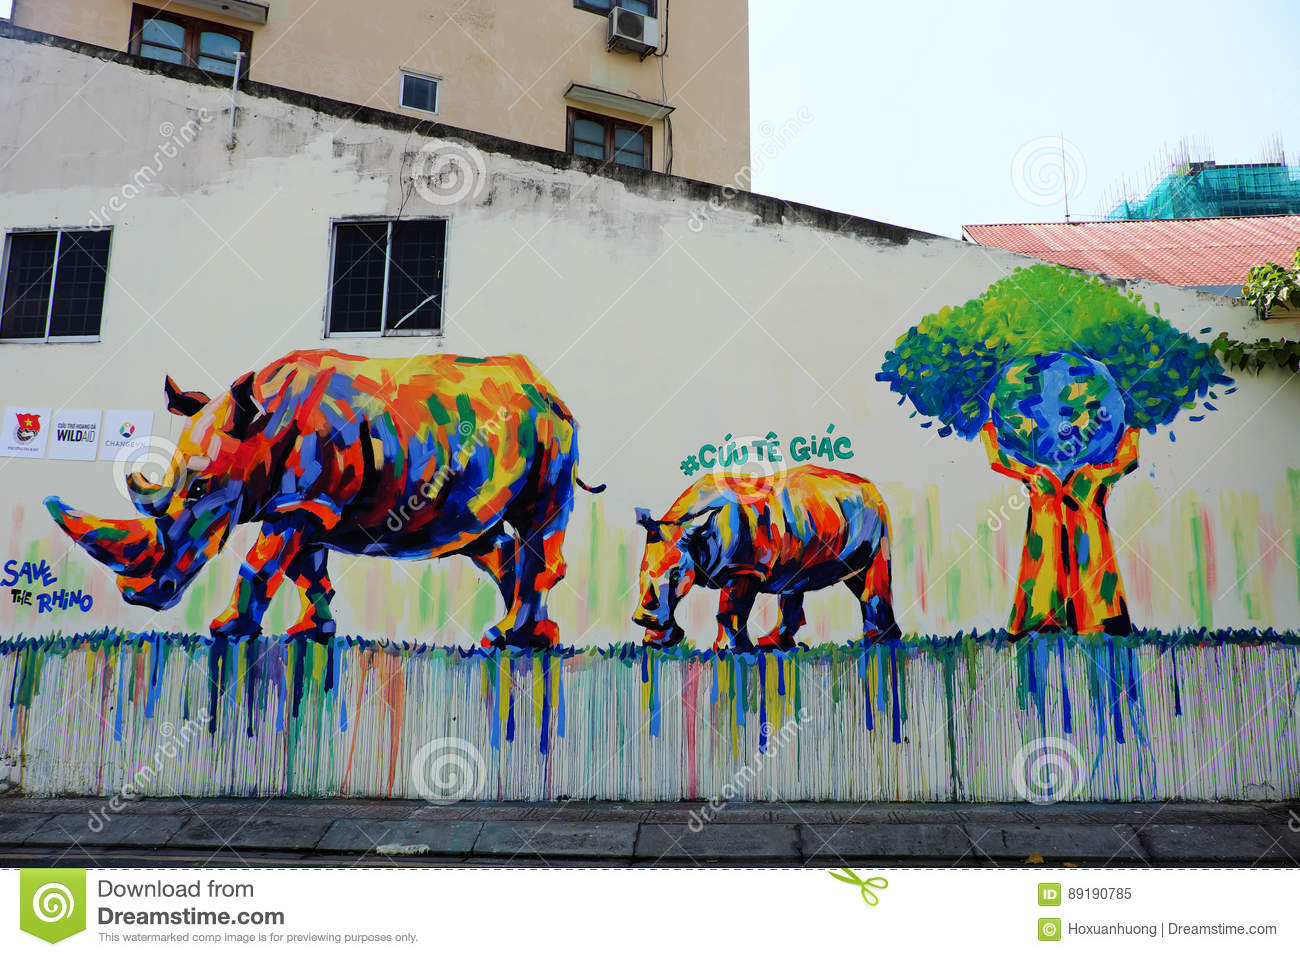 Ho chi minh city viet nam march 23 2017 propaganda campaign to vietnamese dont use rhino horn by graffiti art rhinoceros painting on wall